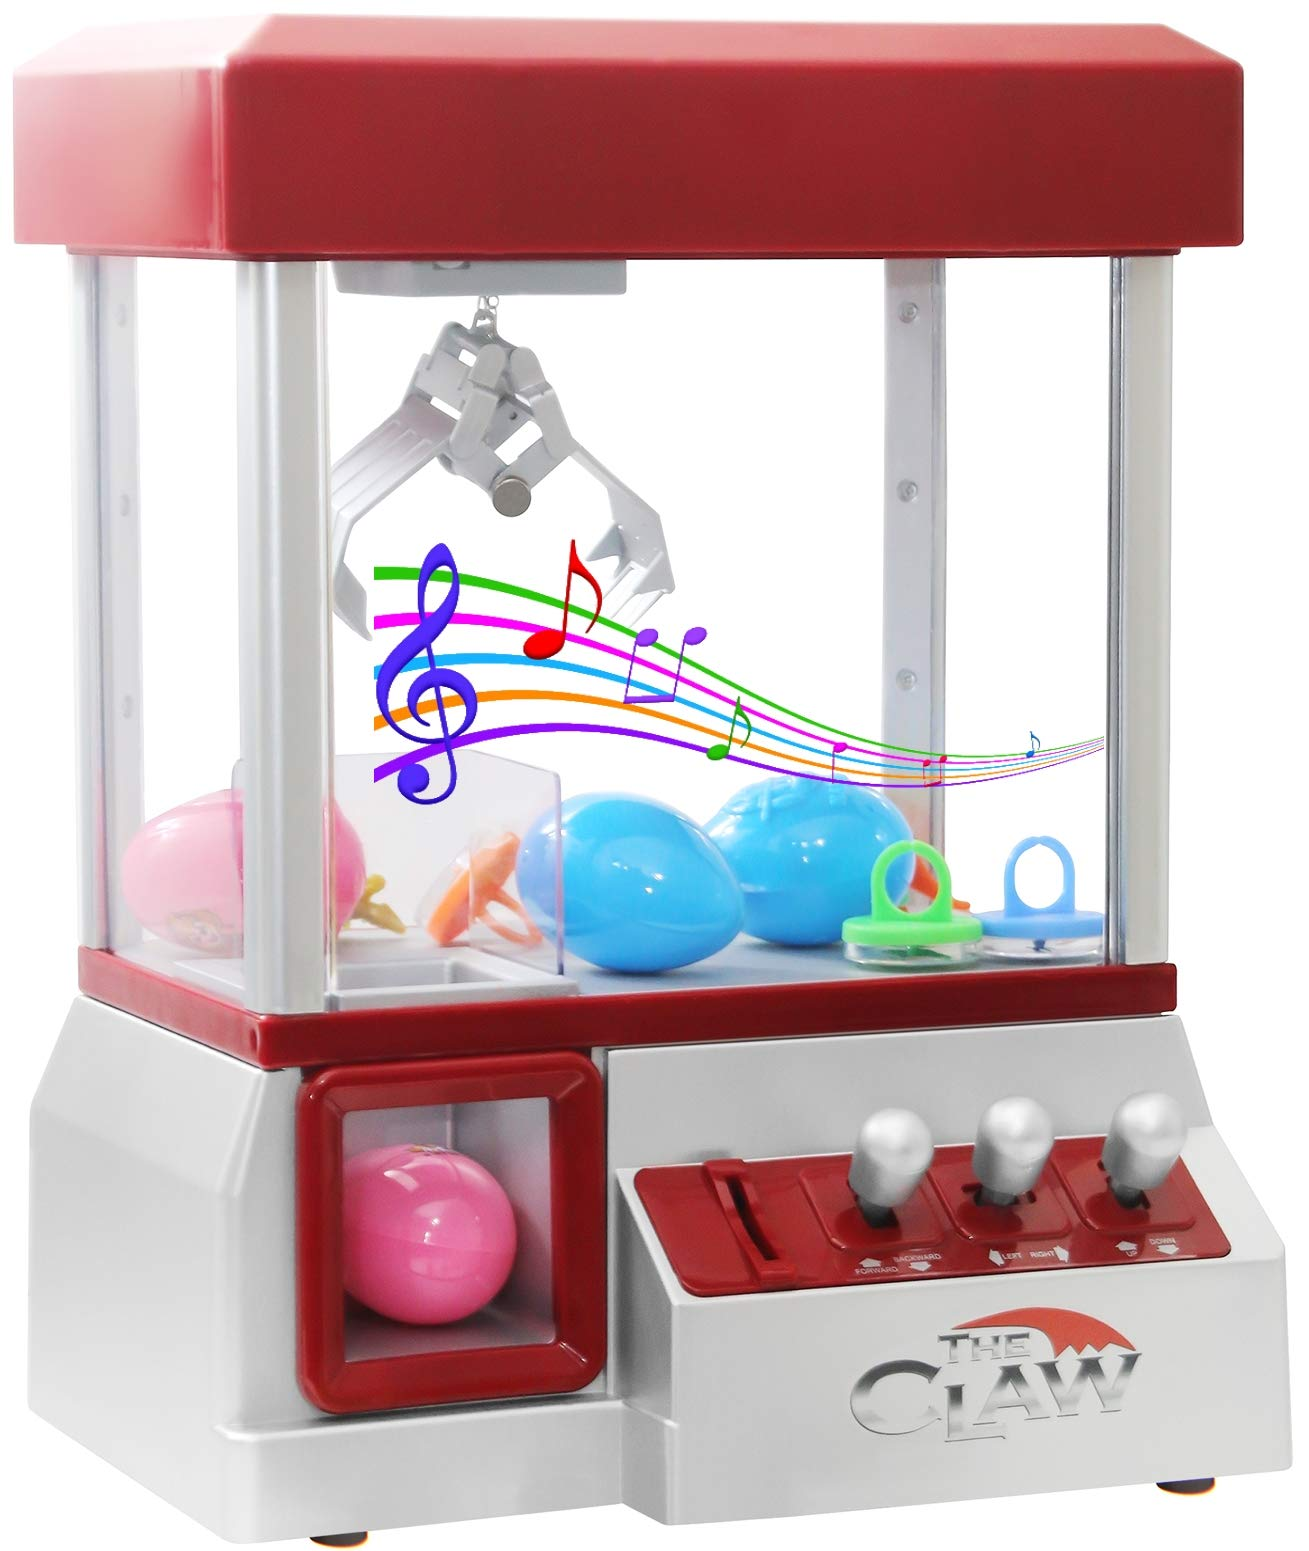 Bundaloo Claw Machine Arcade Game | Candy Grabber & Prize Dispenser Vending Machine Toy for Kids, with Music | Best Birthday & Christmas Gifts for Boys & Girls (Red Claw) by Bundaloo (Image #1)